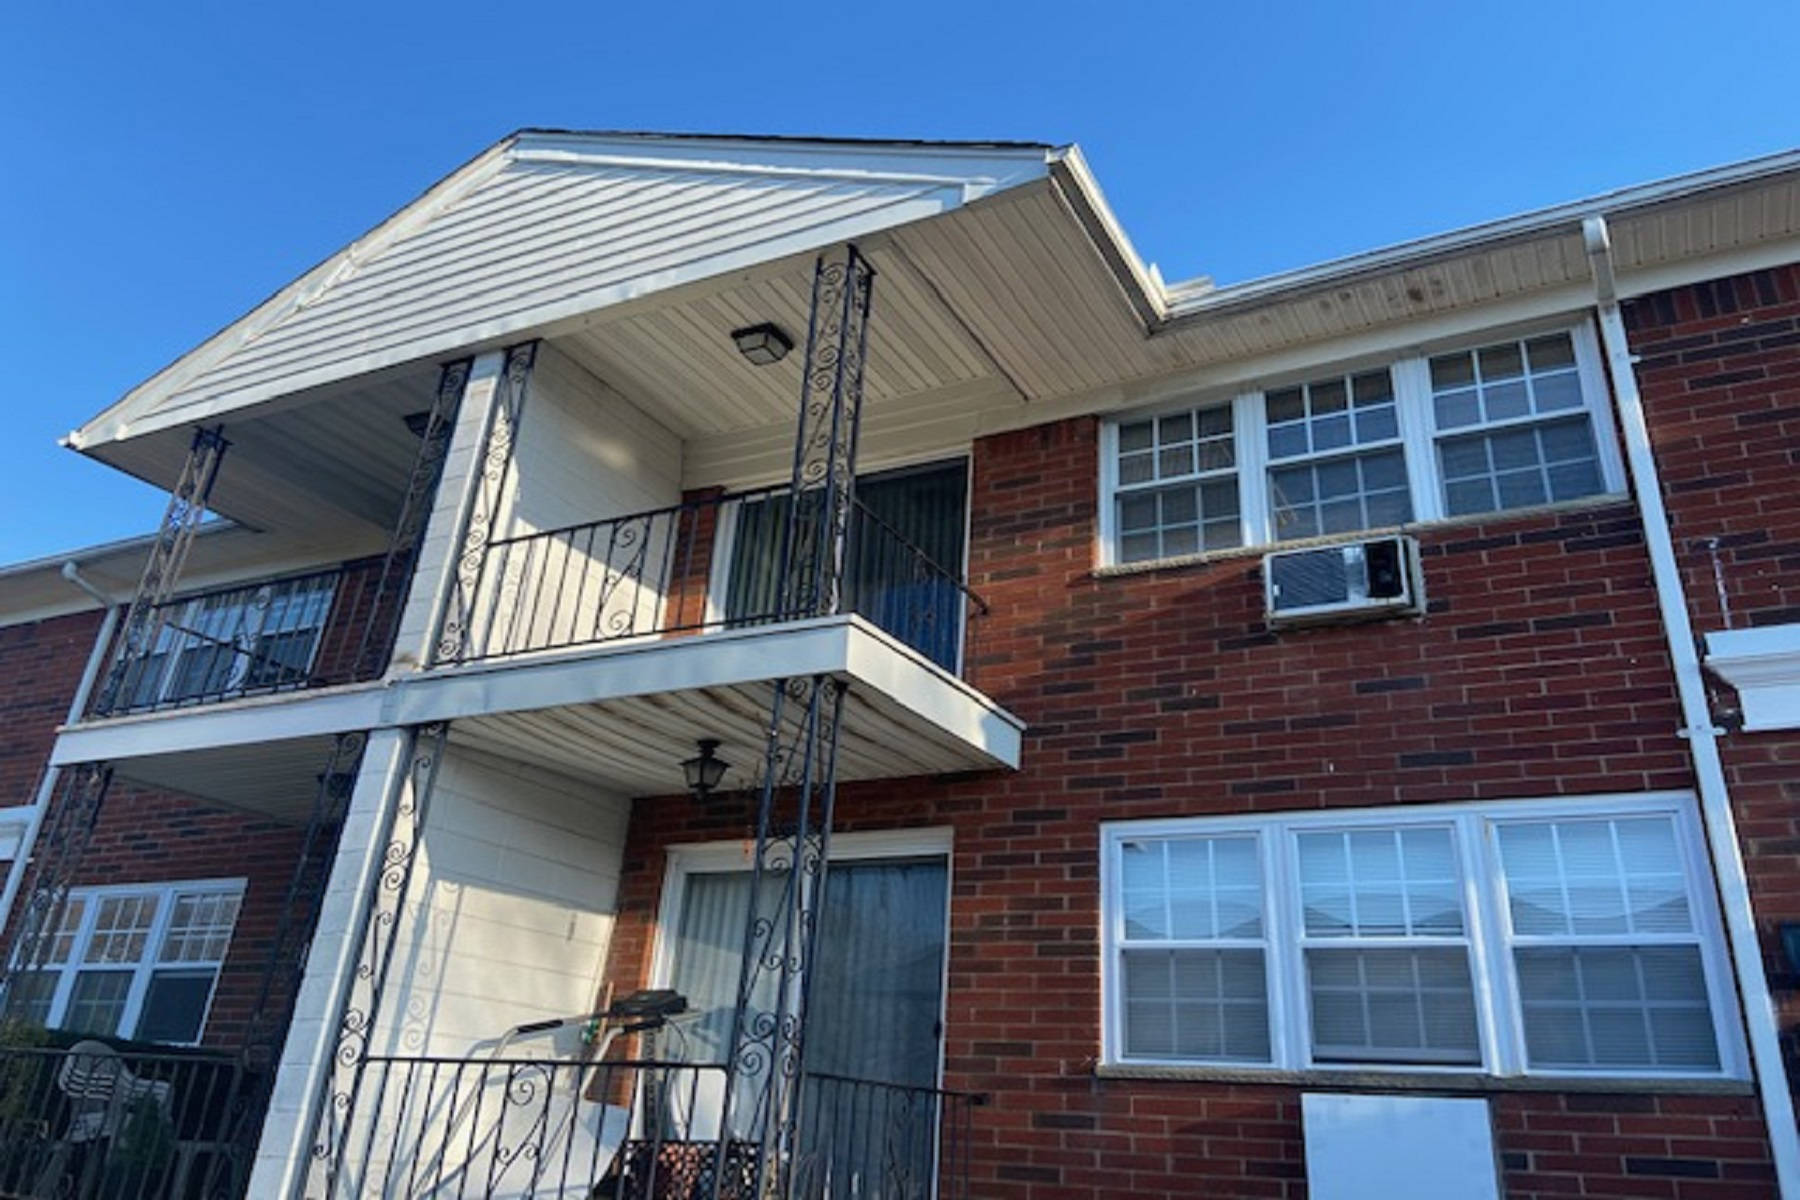 Condominiums for Sale at 12 S Atlantic Avenue E064 Aberdeen, New Jersey 07747 United States